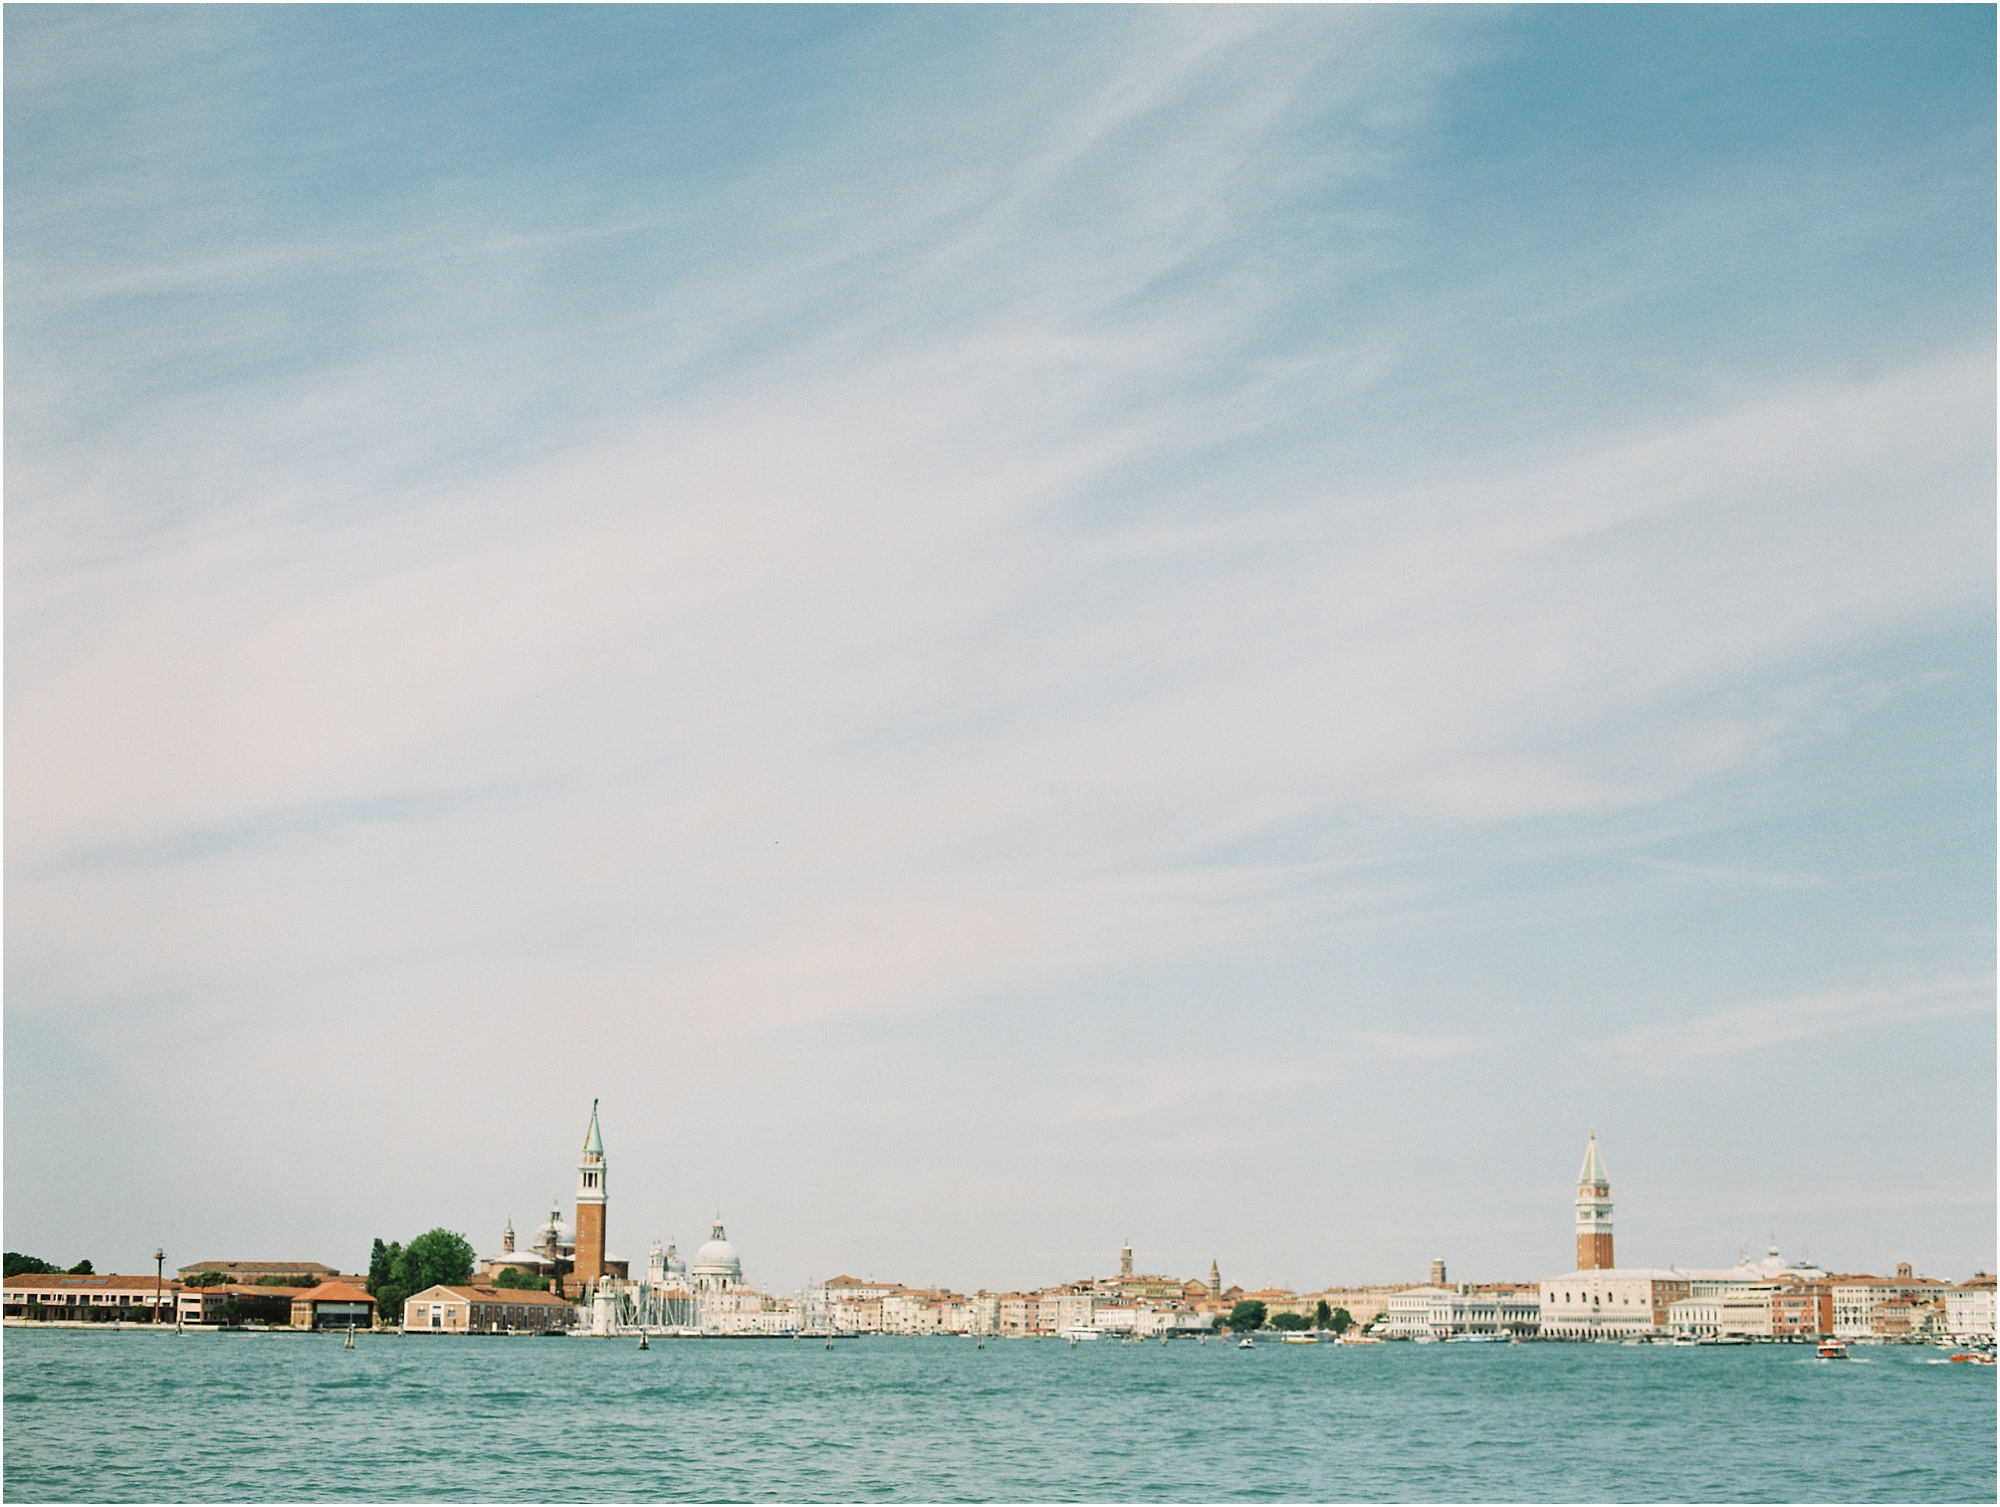 Venice Italy viewed from the water